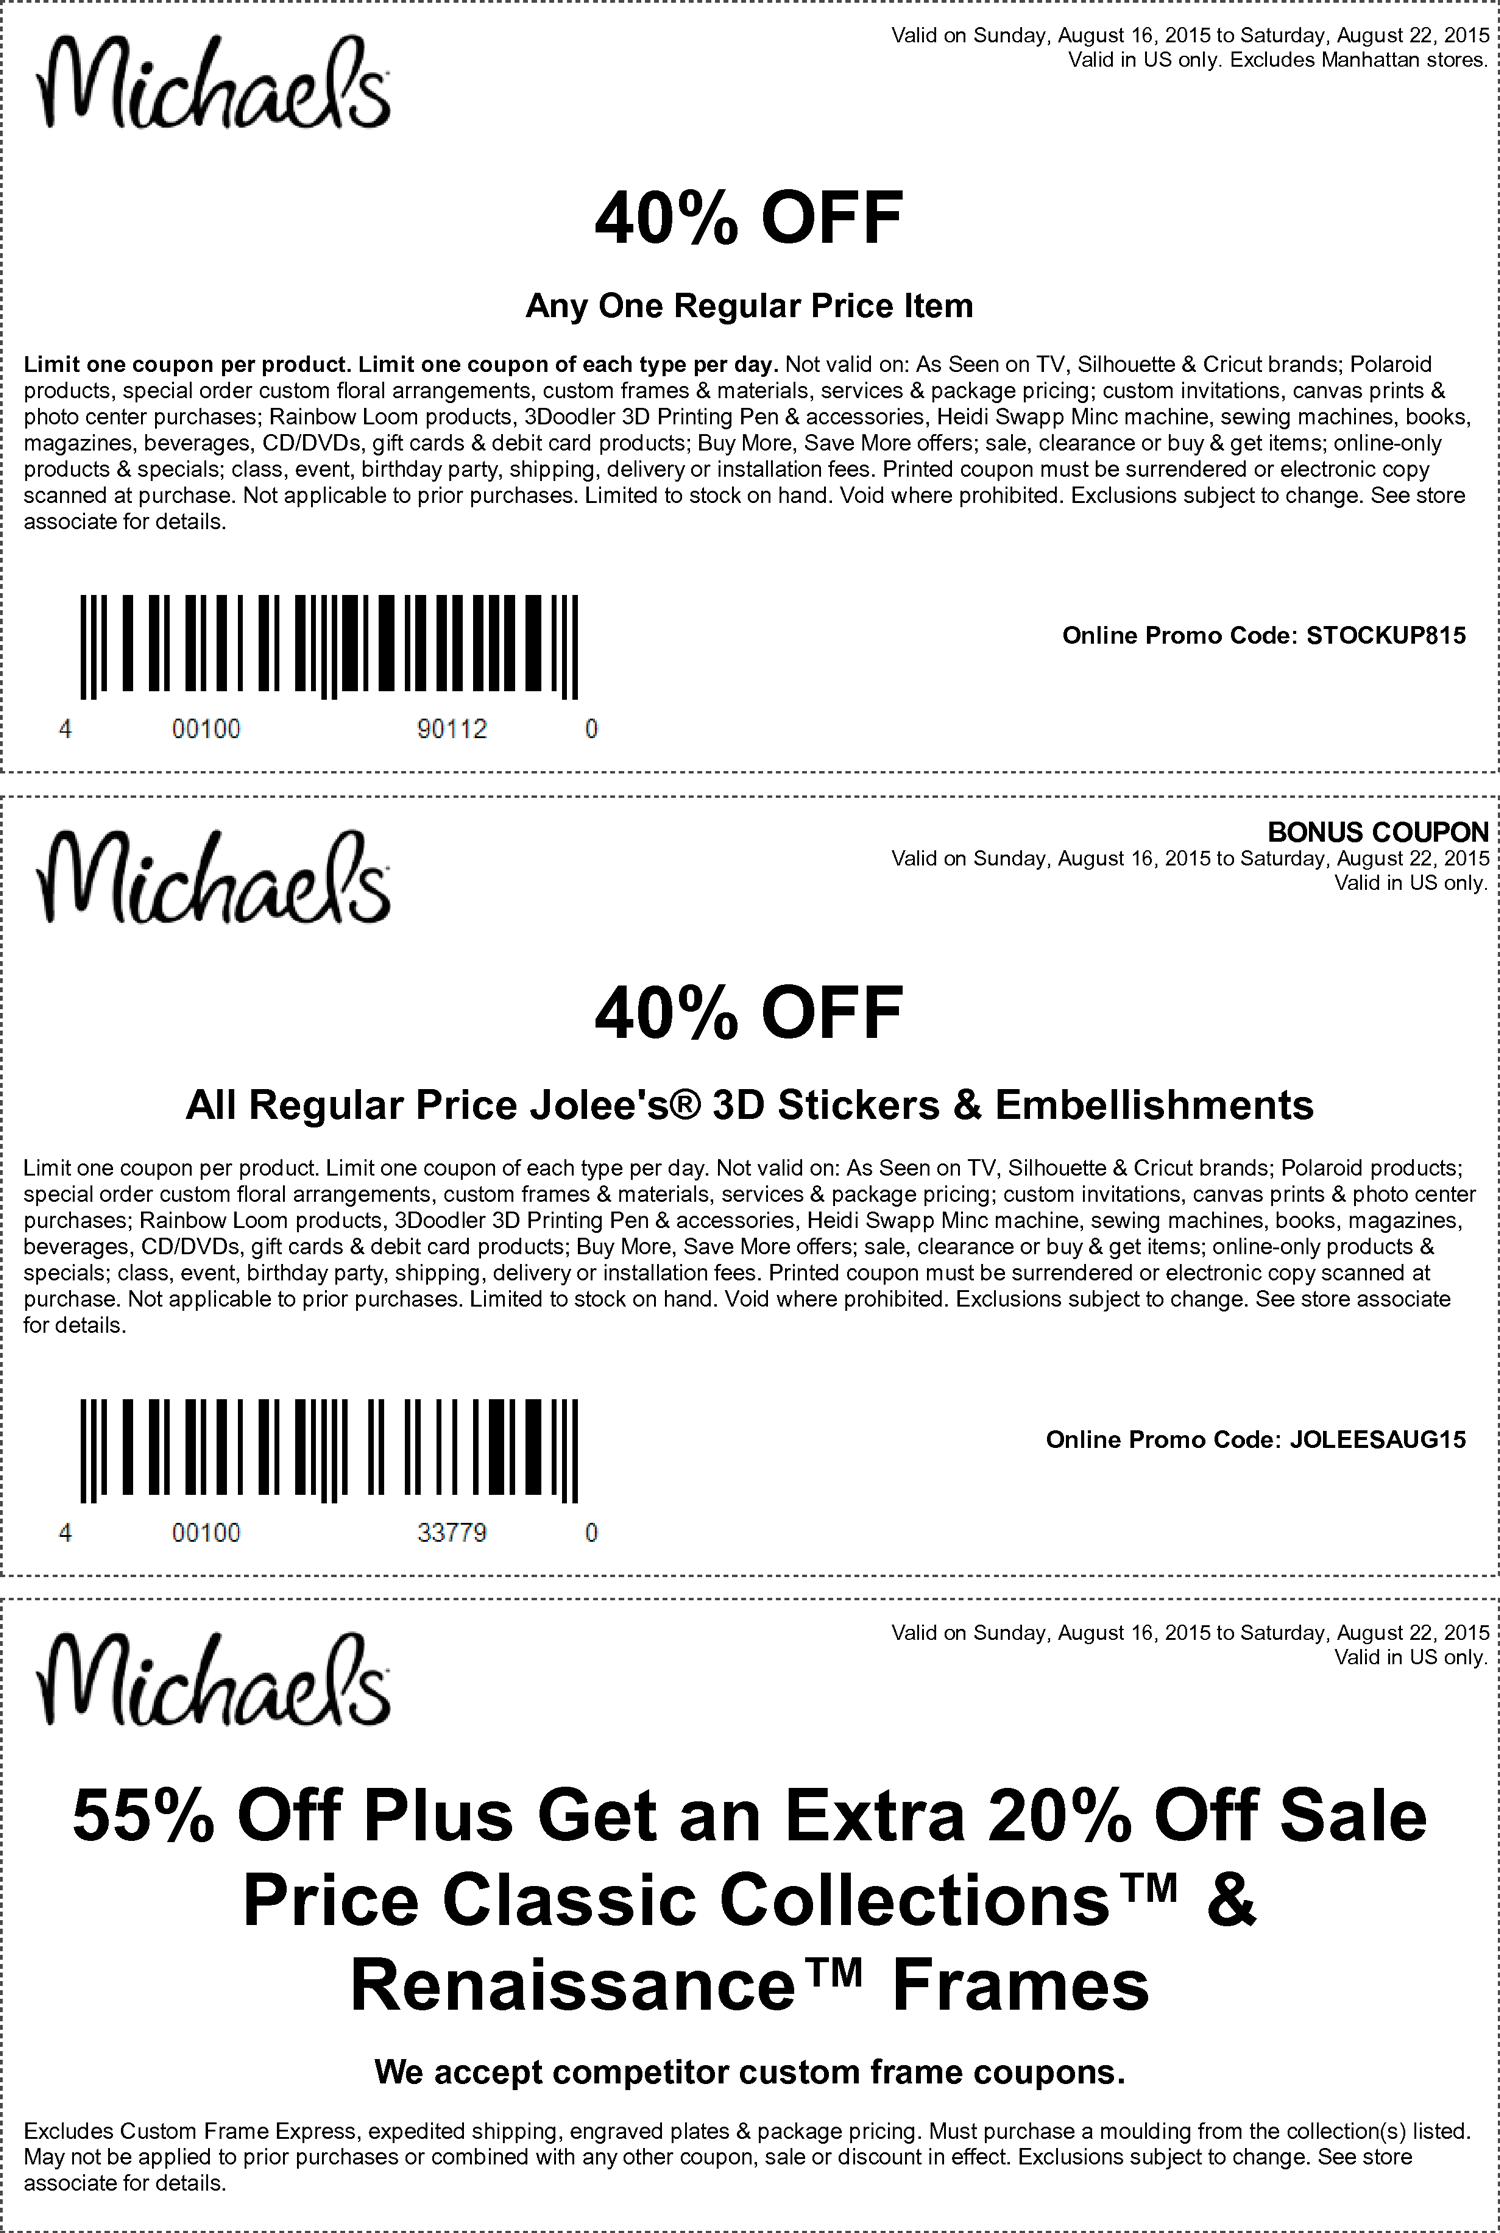 Michaels Coupon April 2018 40% off a single item & more at Michaels, or online via promo code STOCKUP815